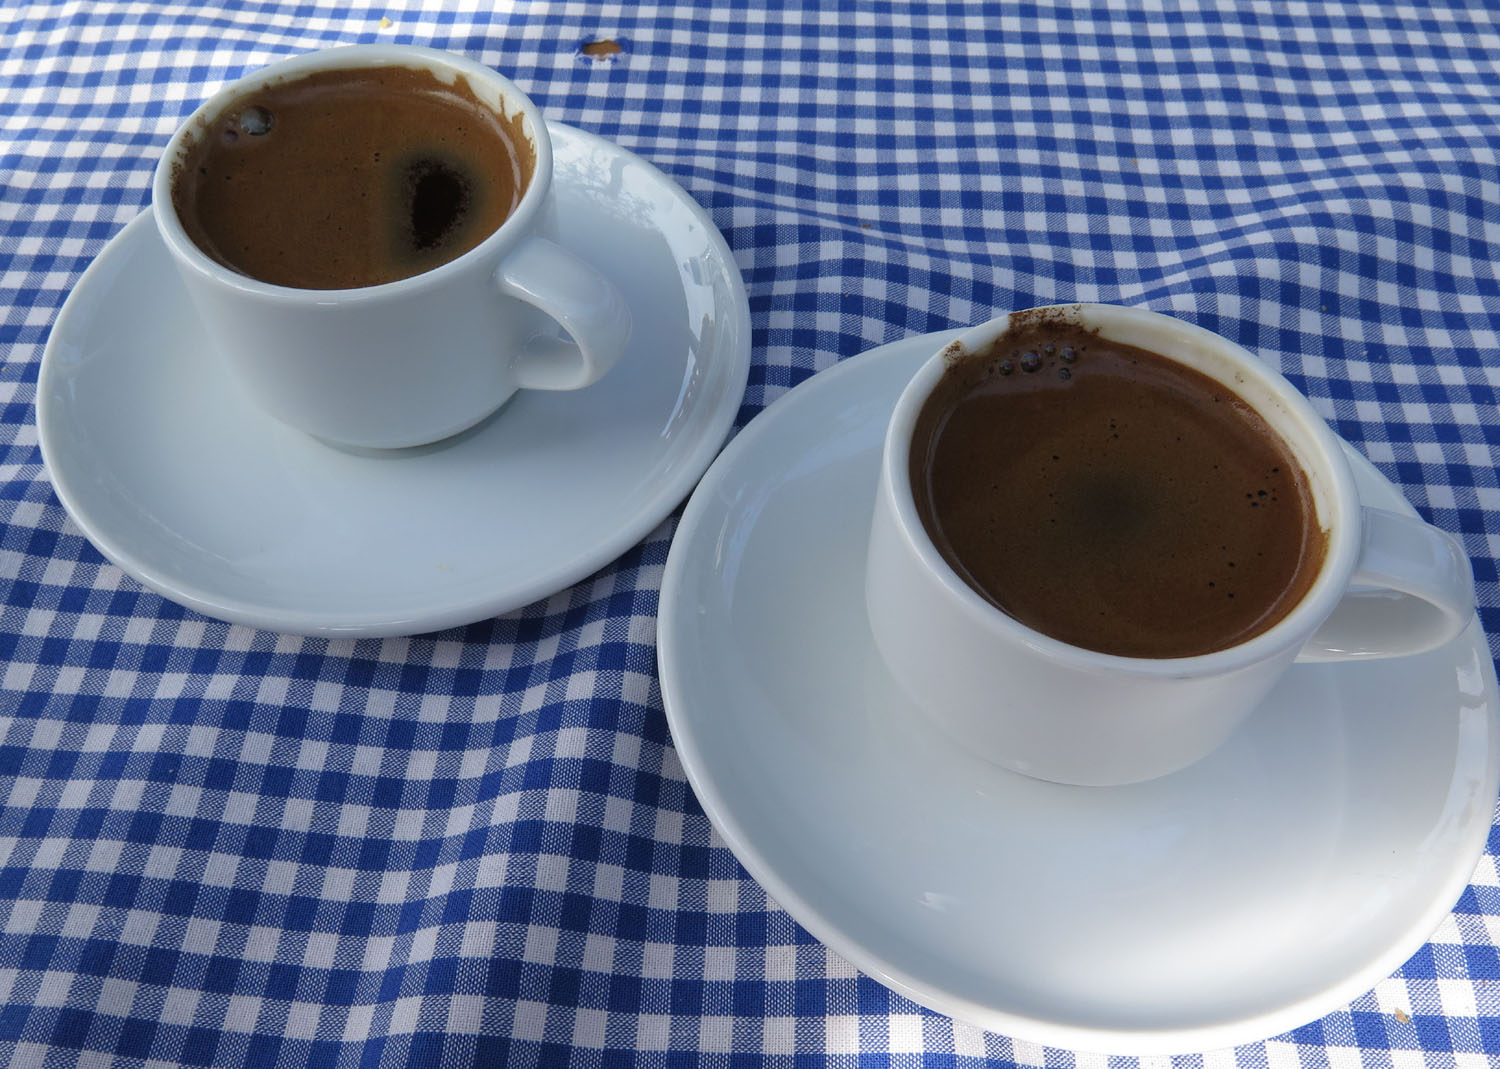 Turkey-Istanbul-Food-And-Drink-Turkish-Coffee